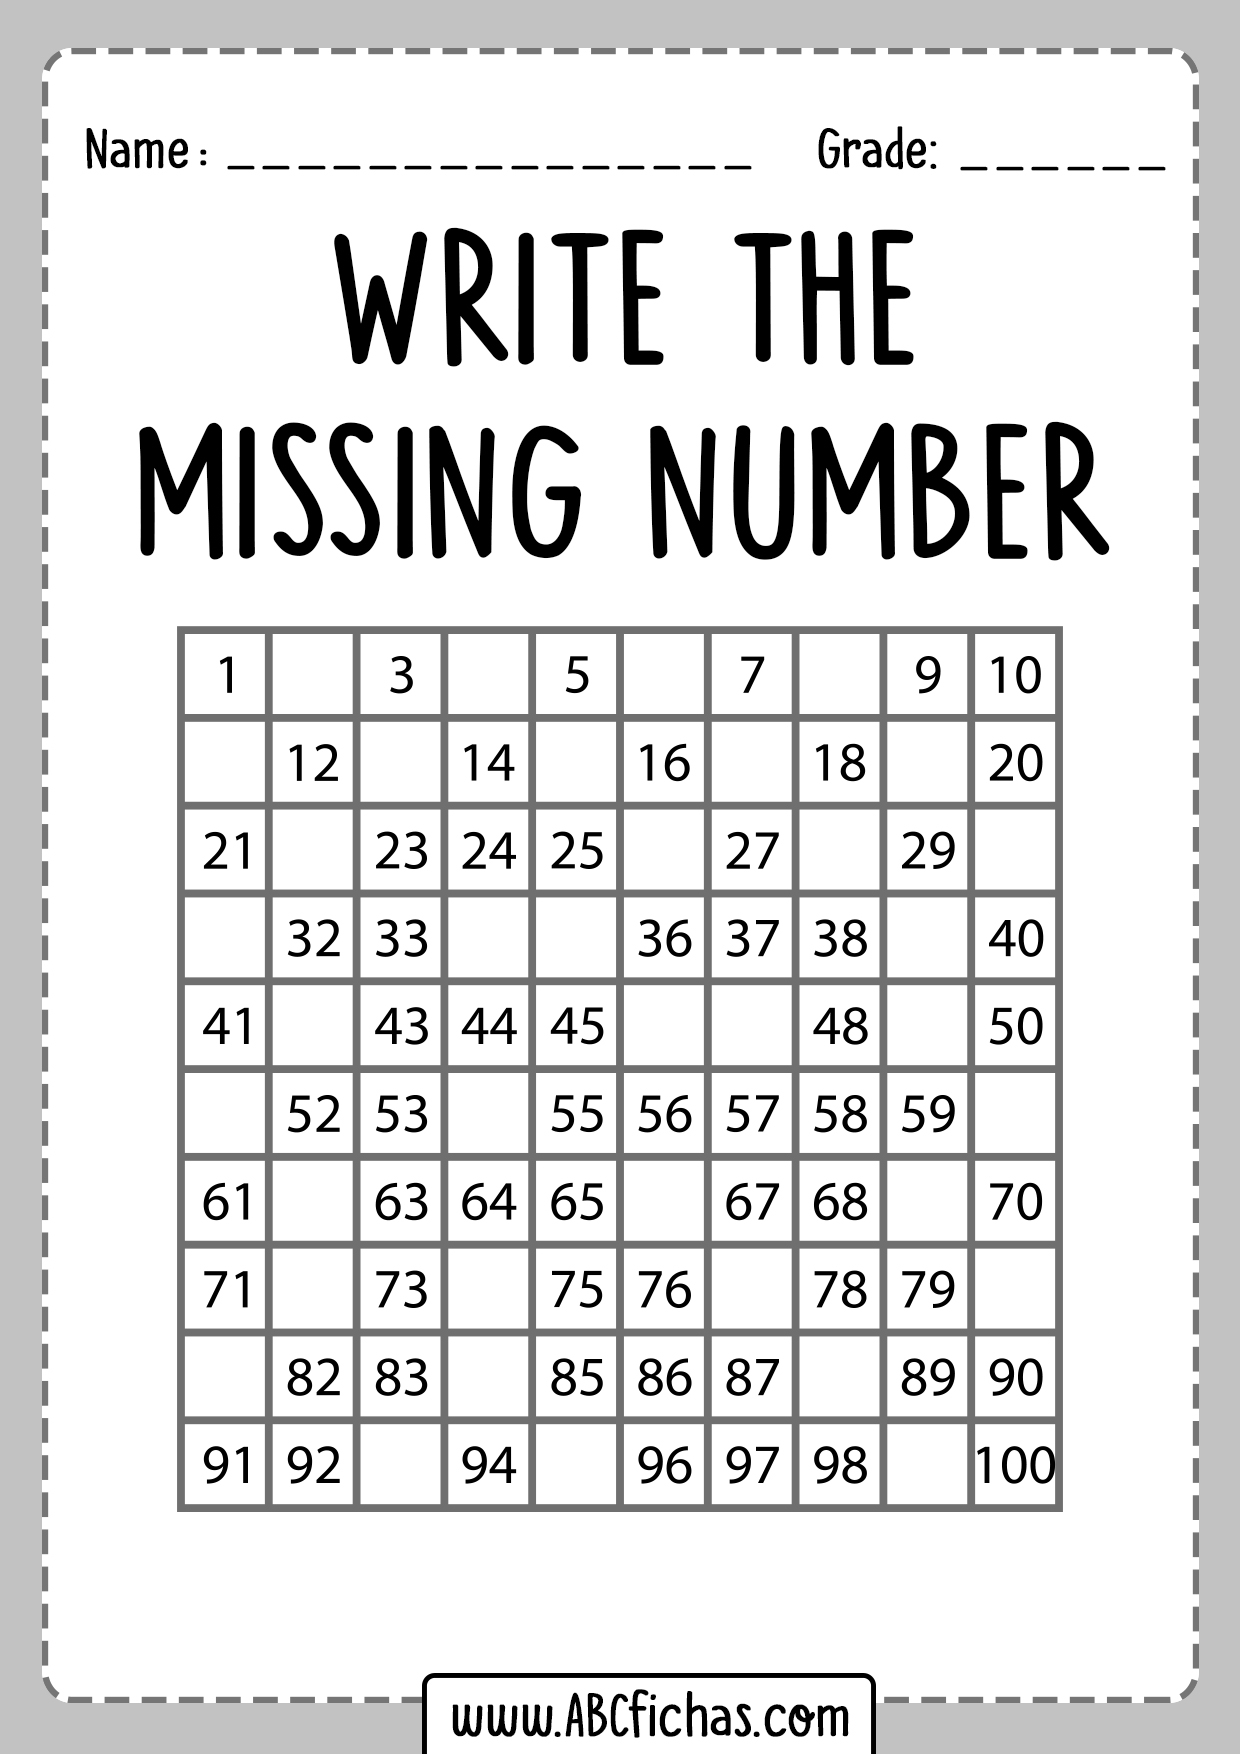 hight resolution of Jungle Numbers And Abc Worksheets   Printable Worksheets and Activities for  Teachers